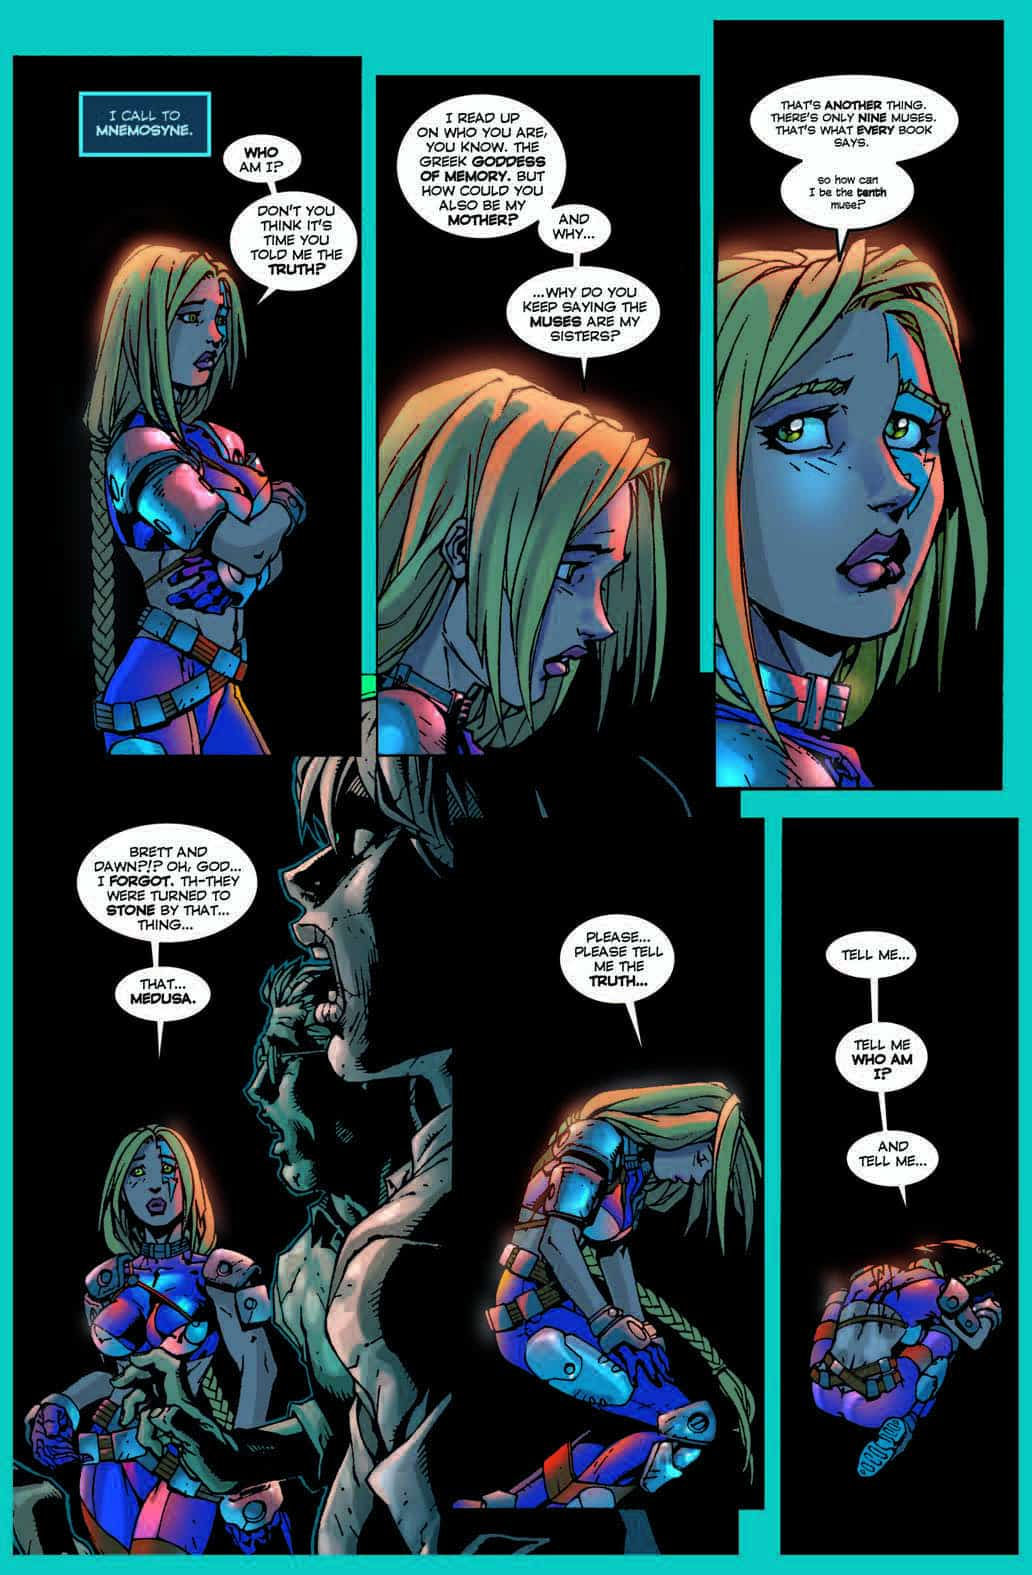 10th-Muse-Vol-2-the-Image-Comics-Run-Part-2-Image-01